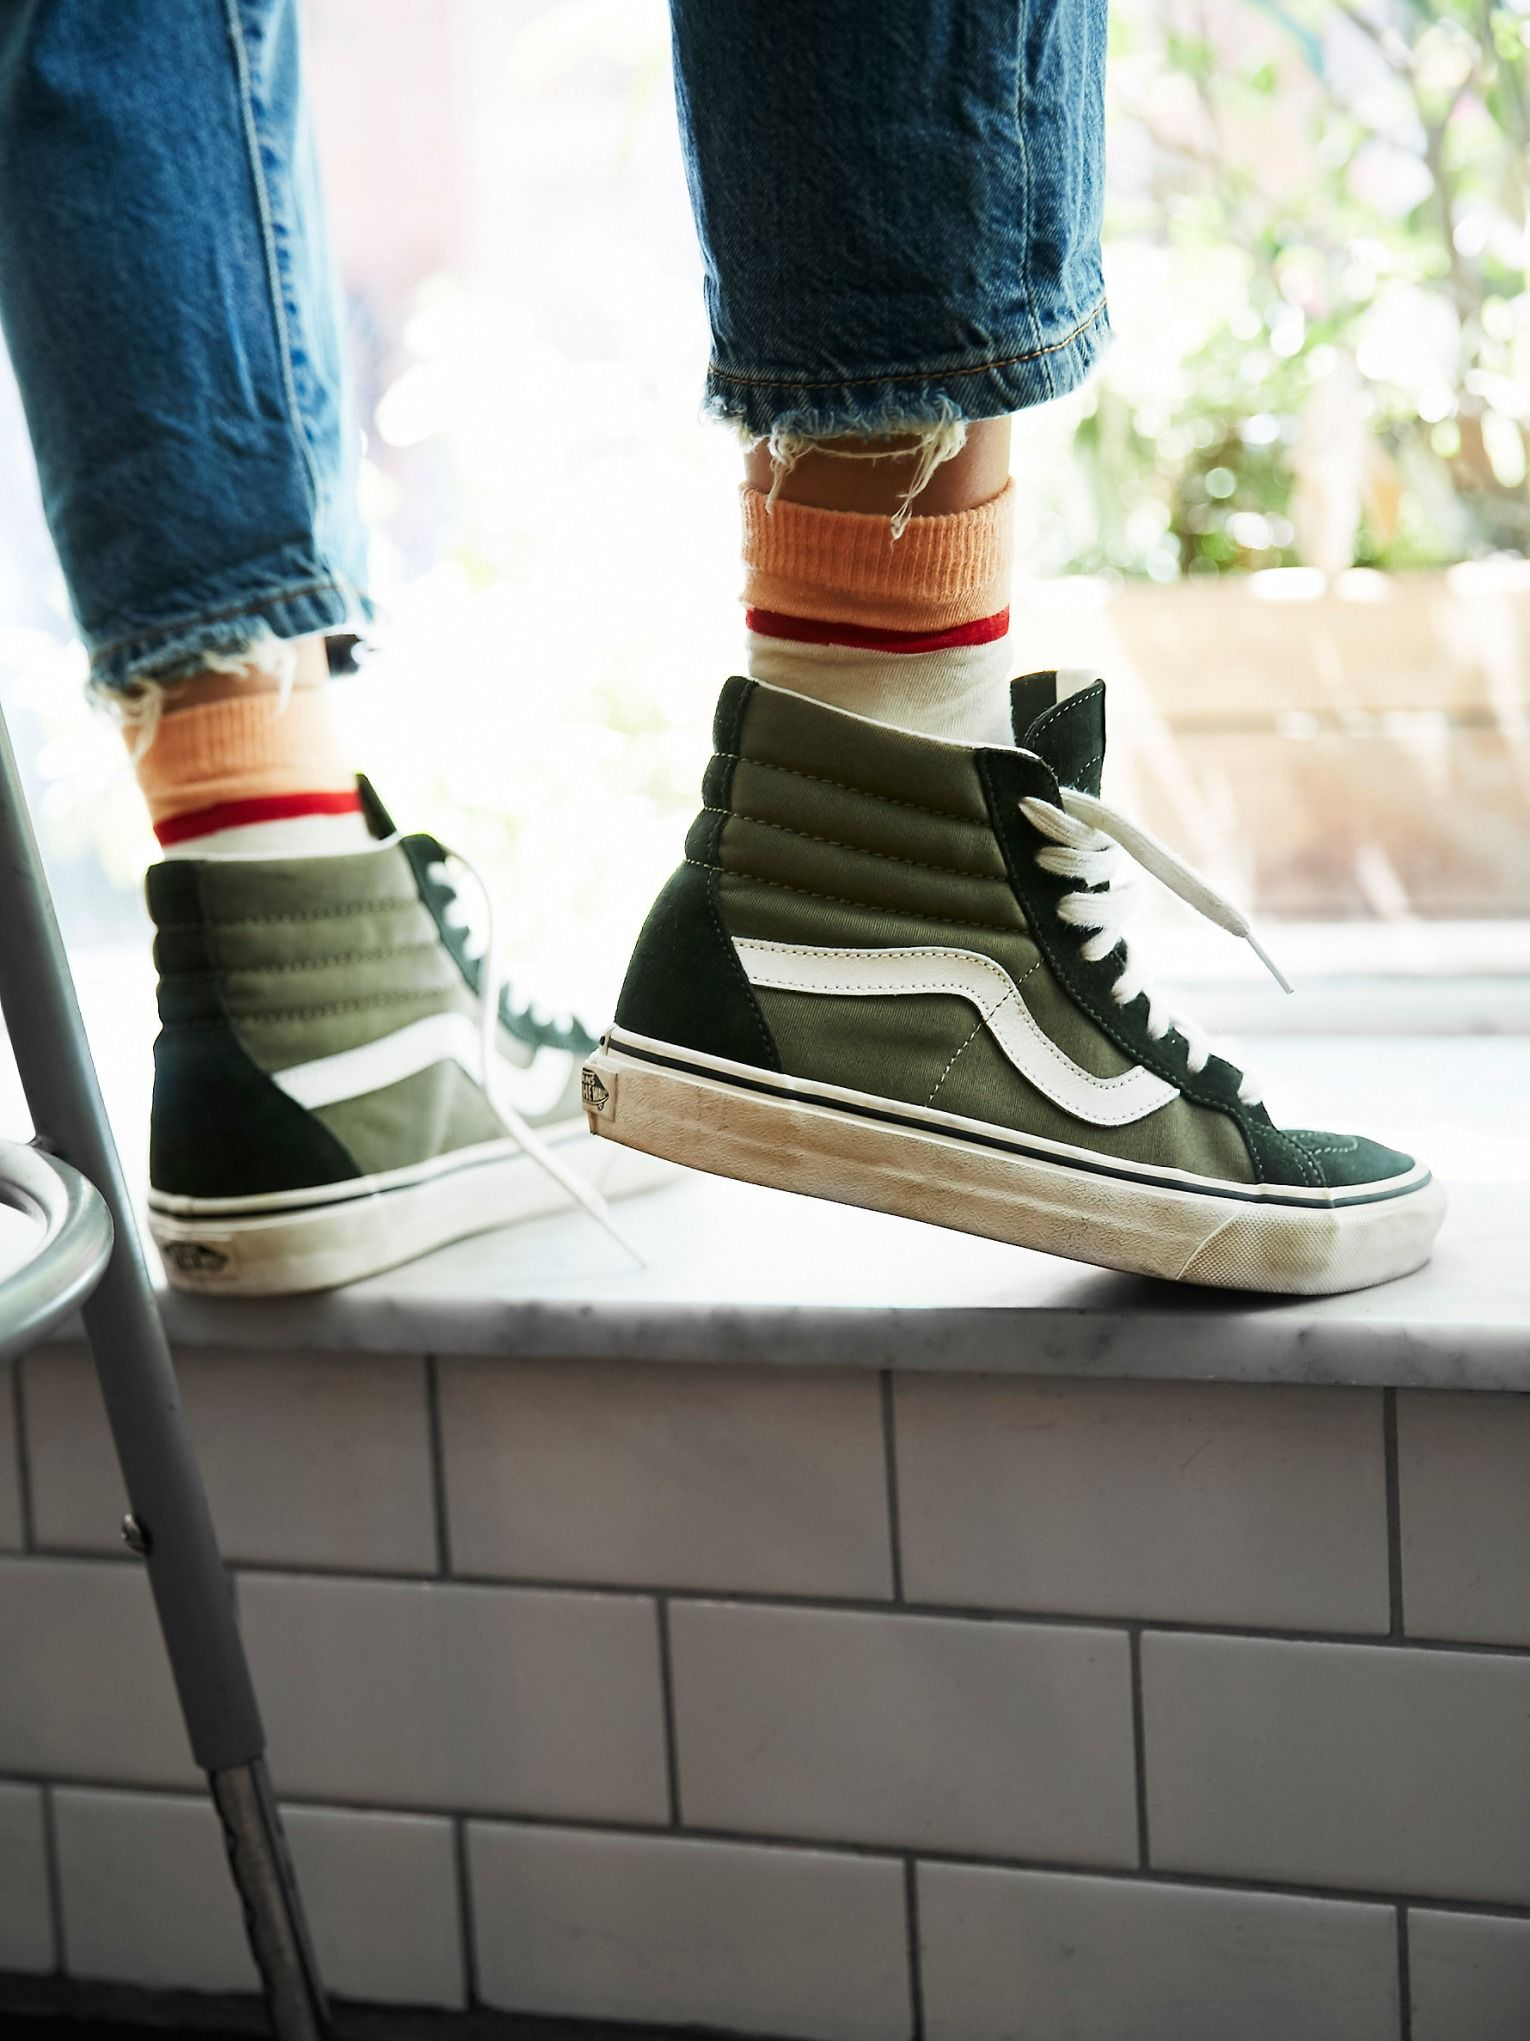 41f1dcef32 Vans Two-Tone sk-8 Reissue High Top at Free People Clothing Boutique